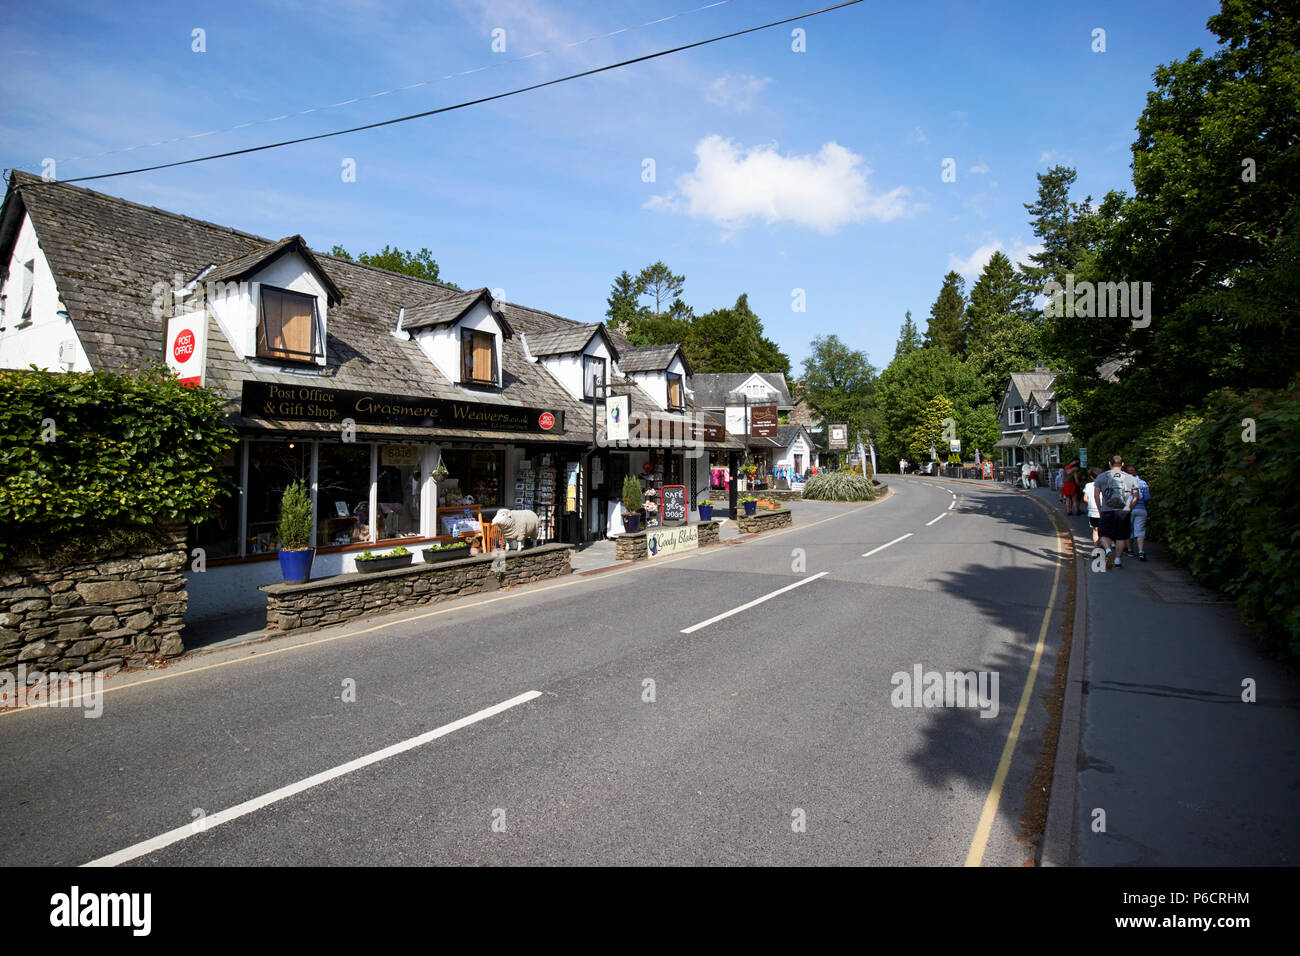 post office and grasmere weavers shop in grasmere lake district cumbria england uk - Stock Image